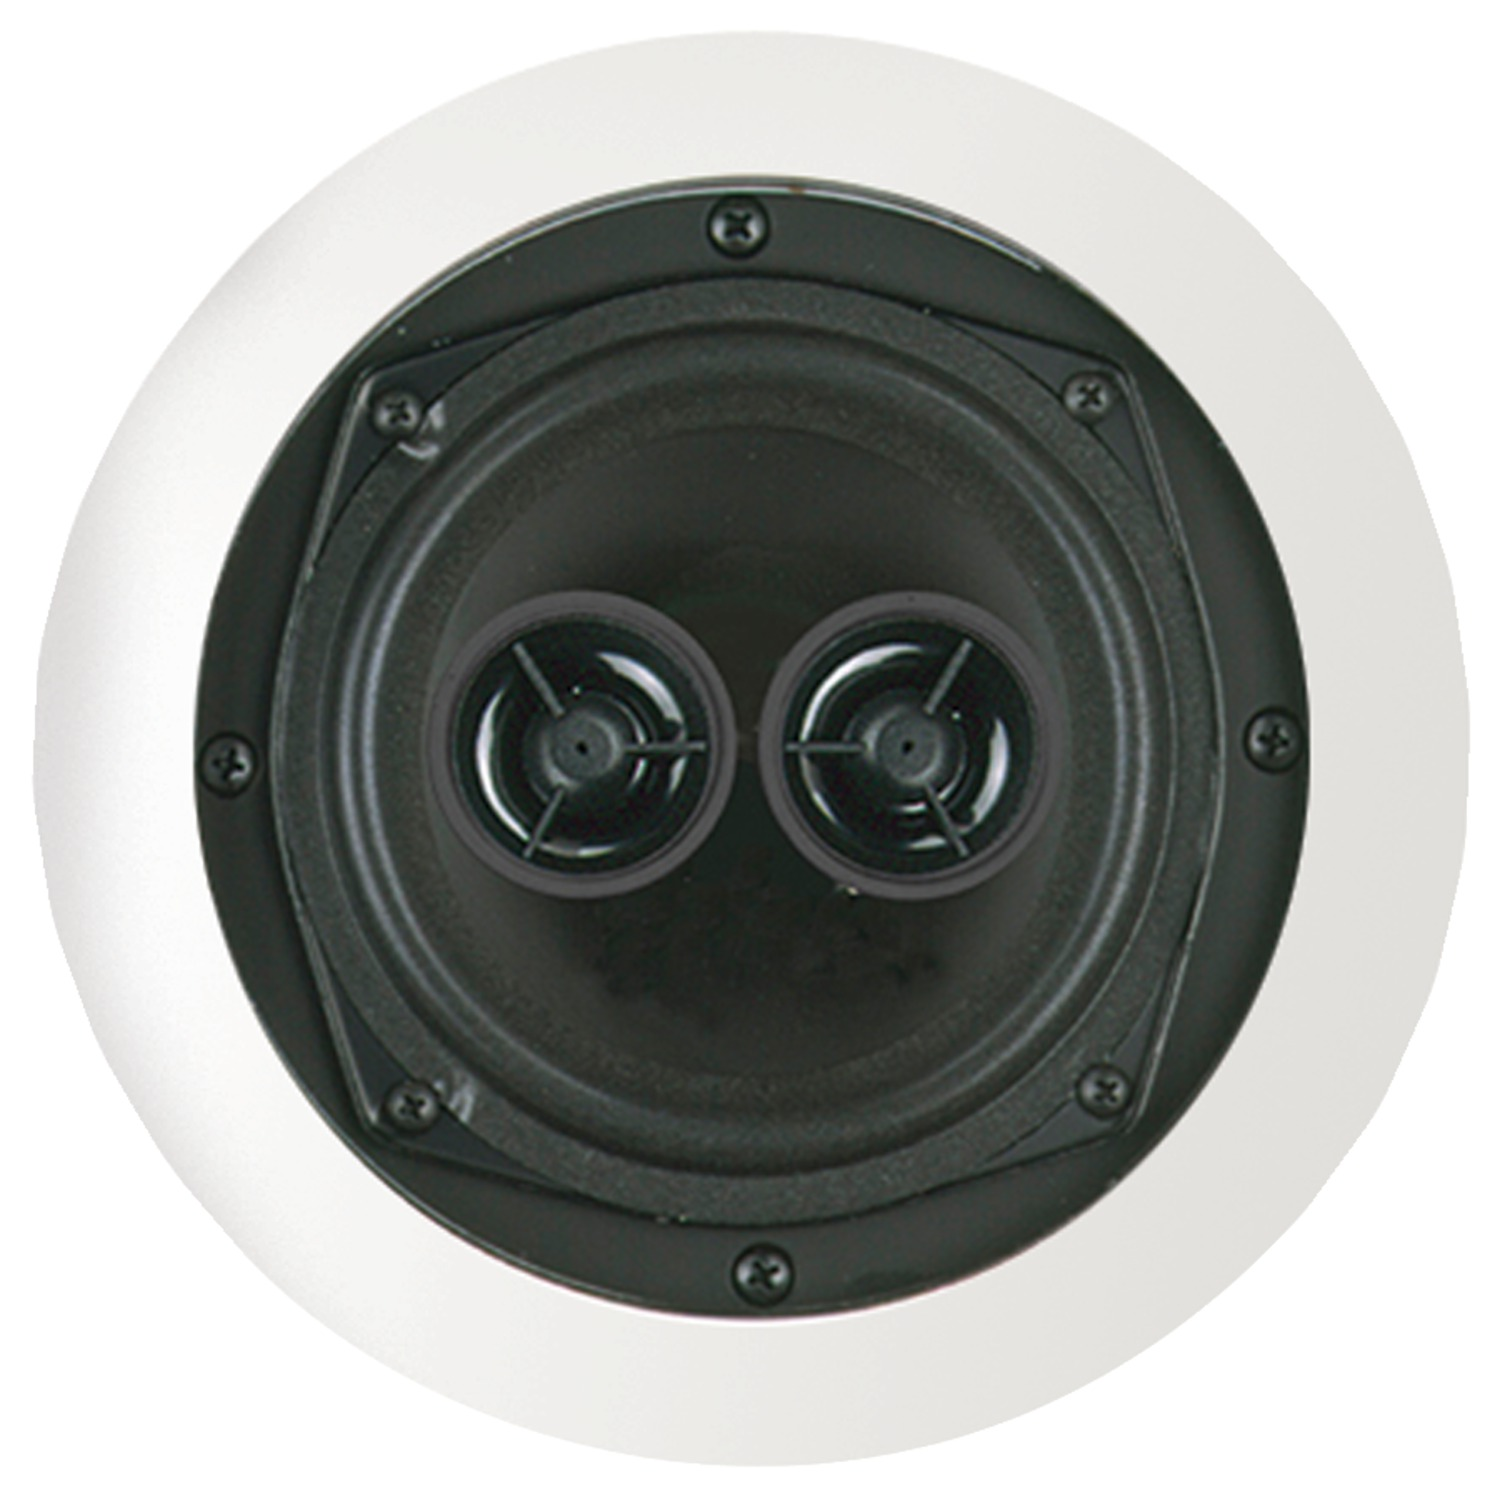 "Bic America Msr5d 5.25"" Muro Dual Voice-coil Stereo Ceiling Speaker"